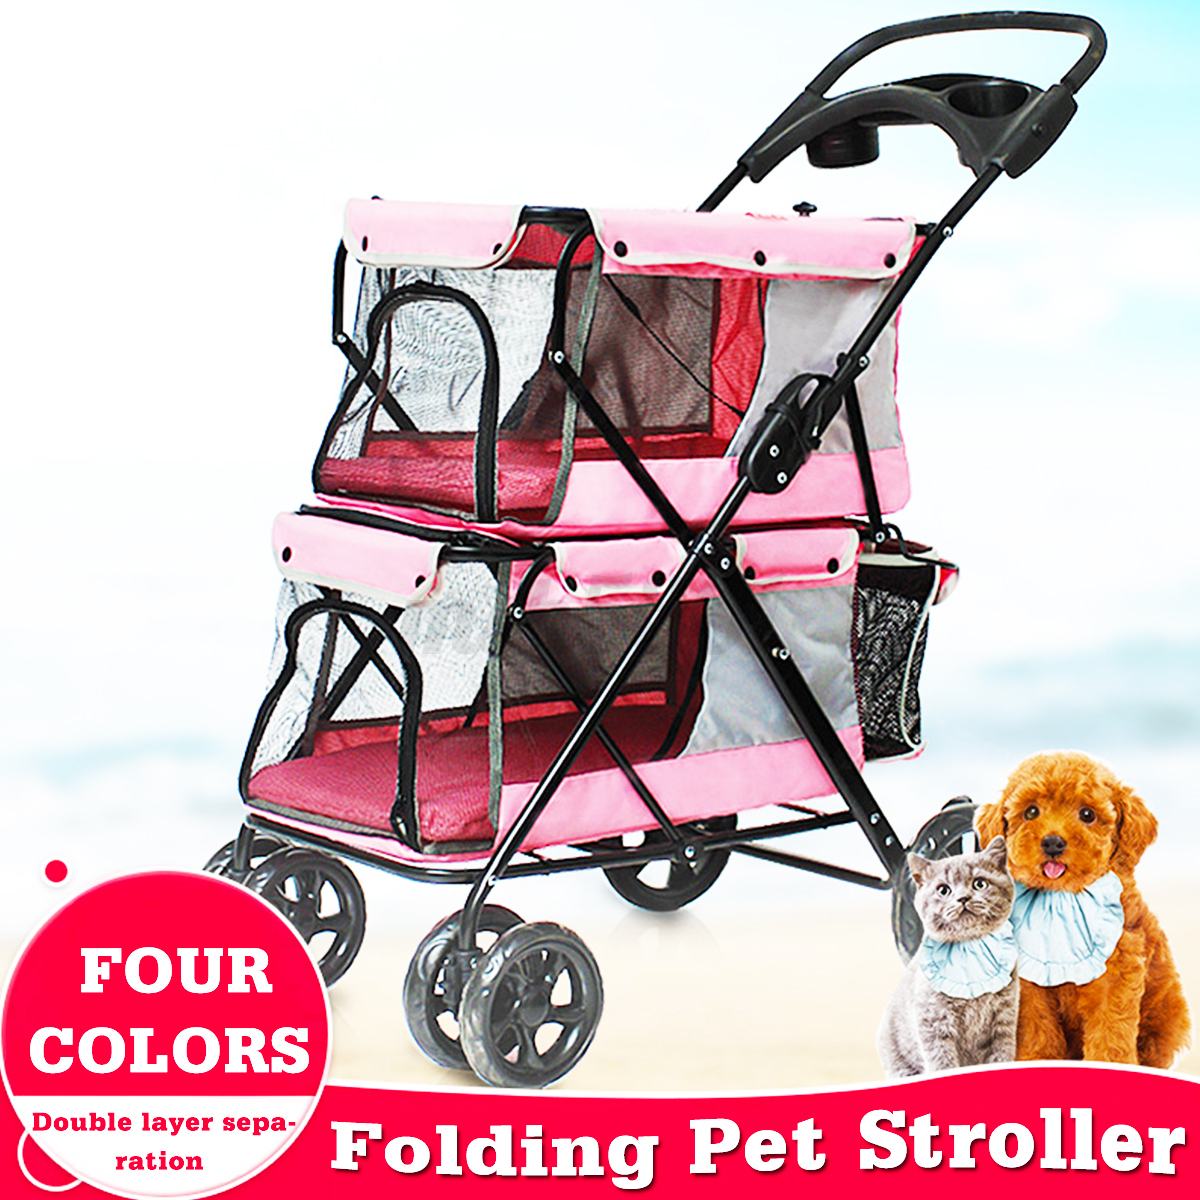 Oxford Pet Stroller Ebay Details About Portable Pet Stroller Dog Cat Double Layer Carrier Buggy Breathable Cart Walking